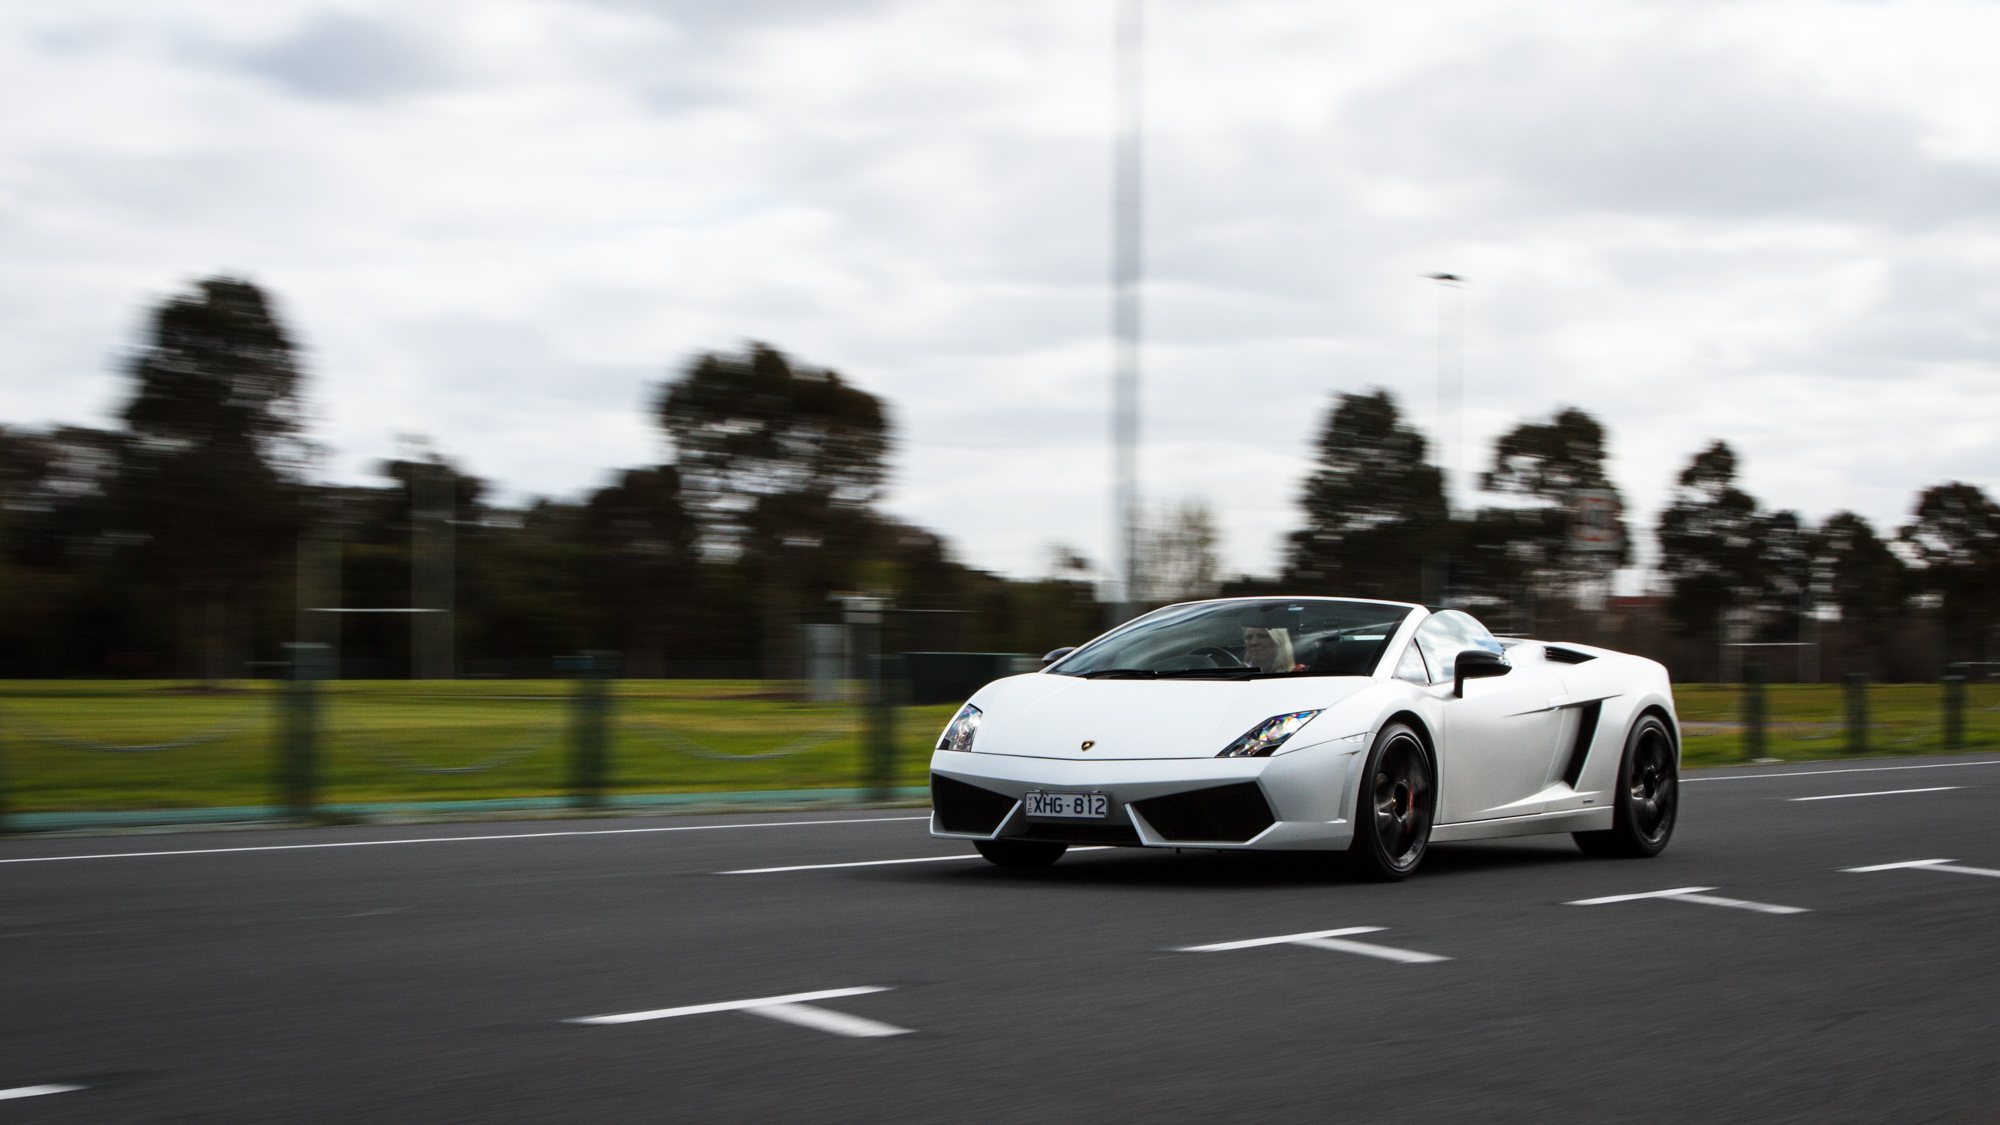 Luxury Supercar Drive Day With Unique Car Rentals  Photos